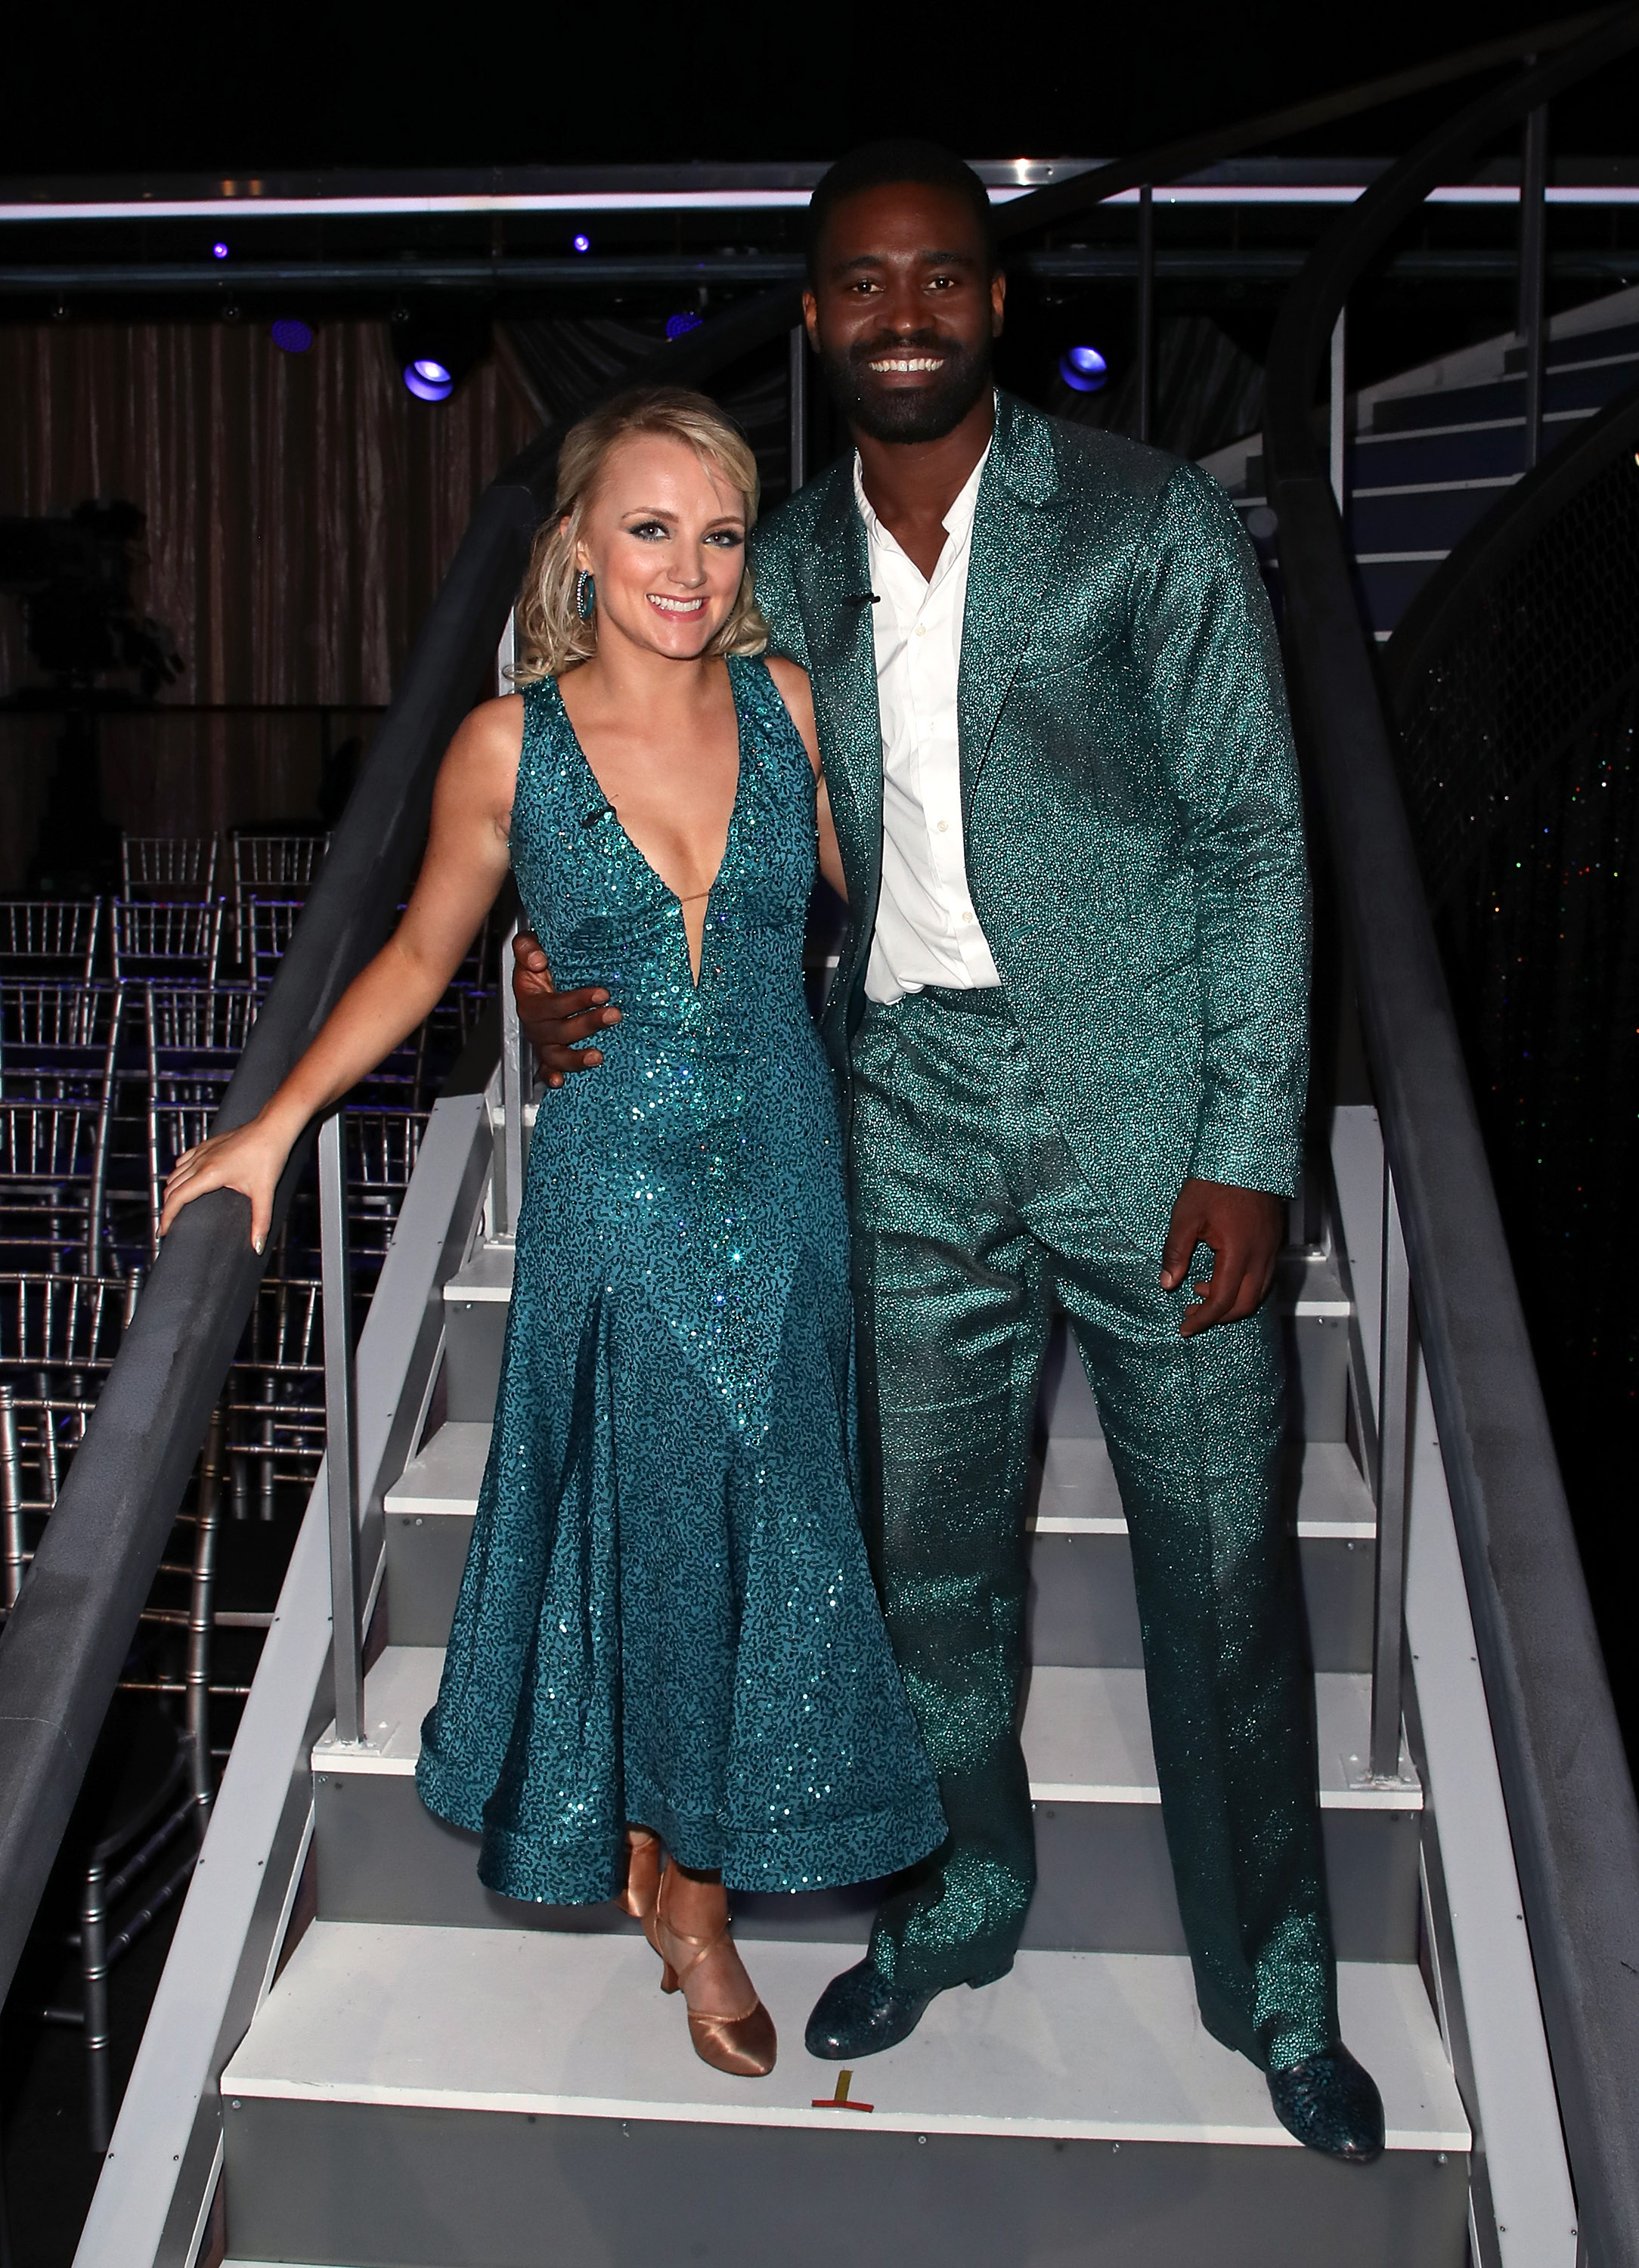 Evanna Lynch (L) and Keo Motsepe pose at 'Dancing with the Stars' Season 27 at CBS Television City on September 24, 2018 in Los Angeles, California.